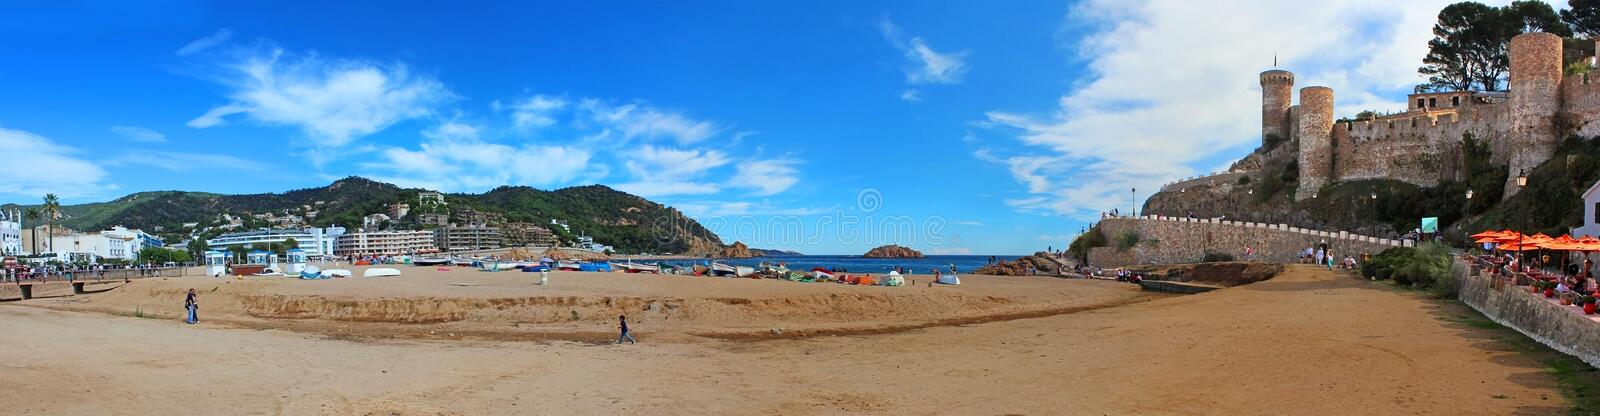 Unknown people are in Tossa de Mar royalty free stock photo